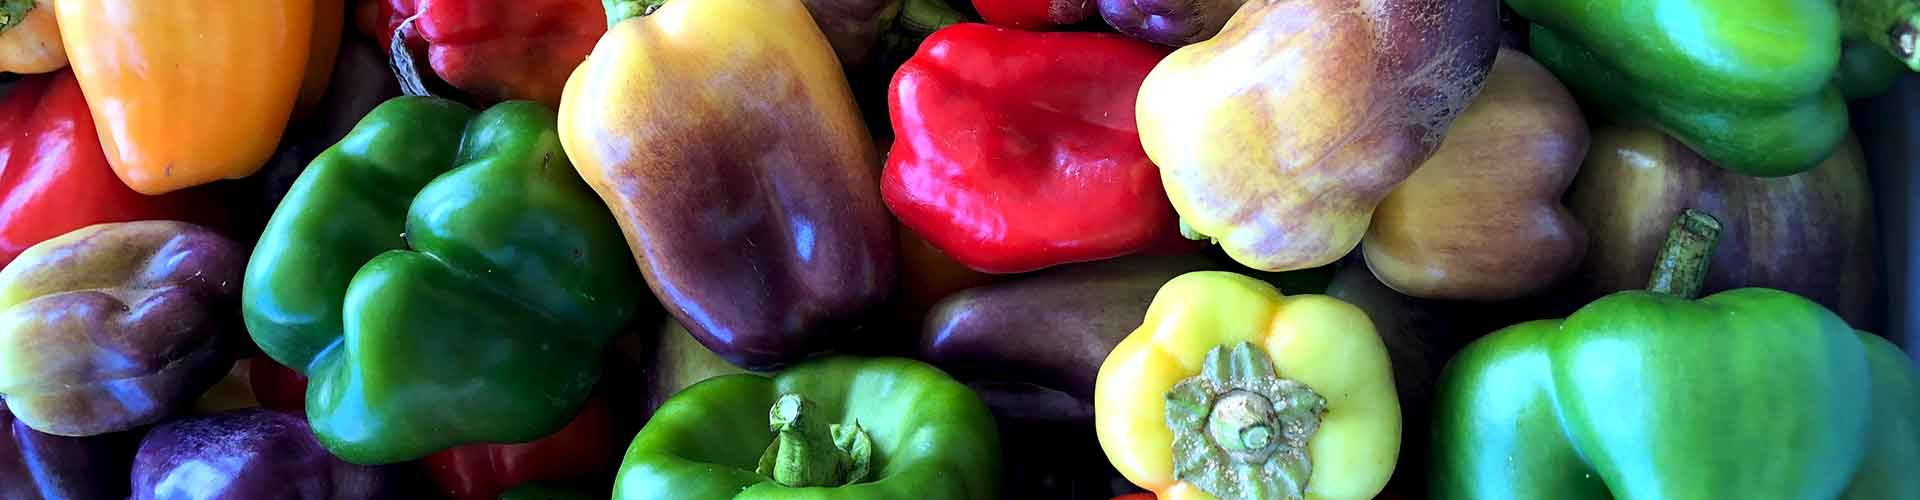 Harvested-bell-pepper-varieties-in-bucket1920